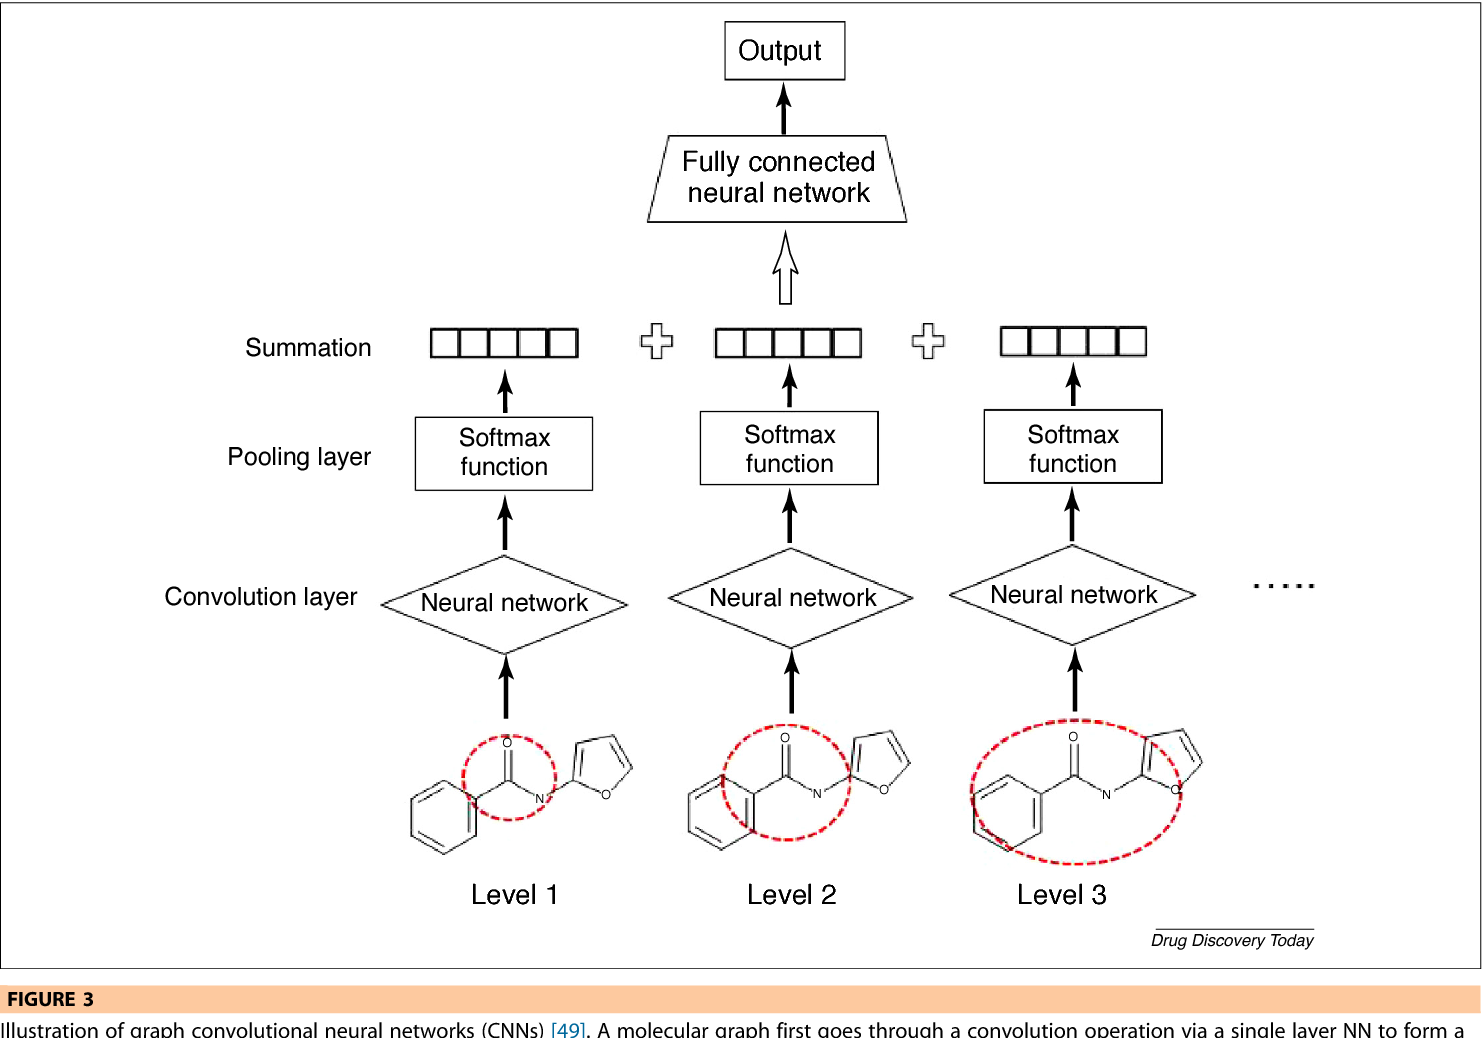 Figure 3 from The rise of deep learning in drug discovery